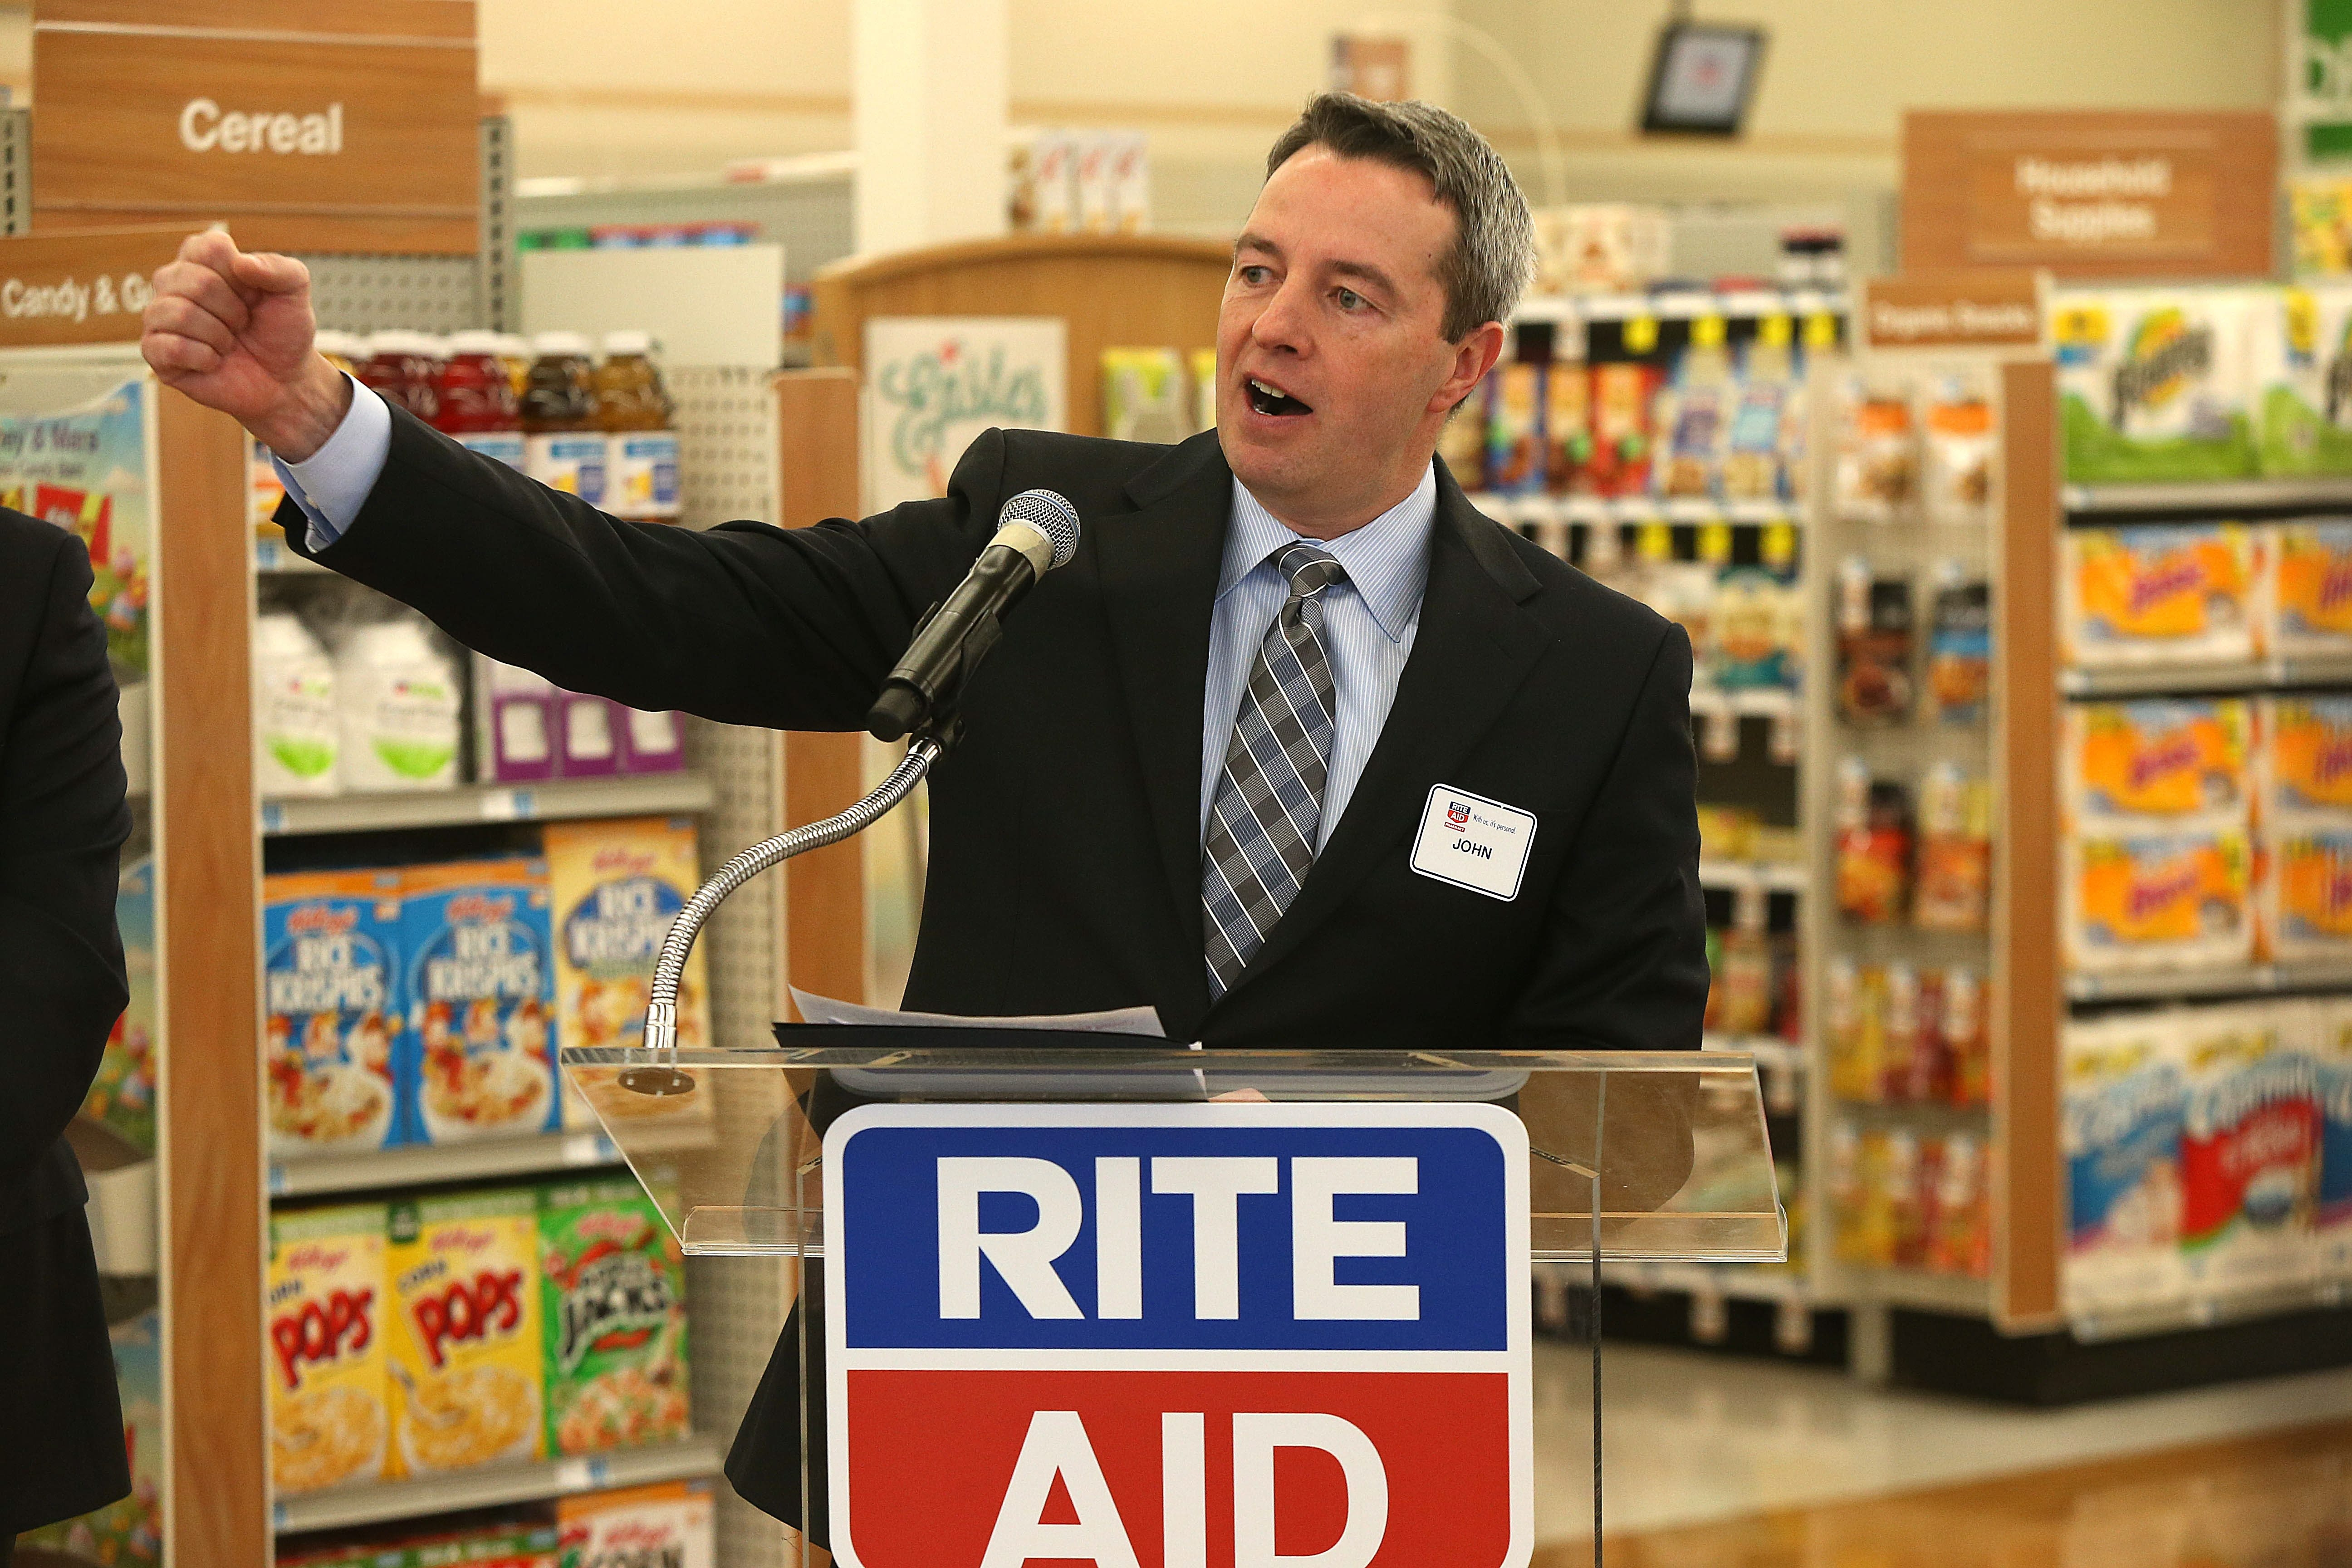 Rite Aid CEO John Standley introduces the Health Alliance program at the Rite Air location on Bailey Avenue in Buffalo on Monday. Buffalo is one of the chain's best markets.